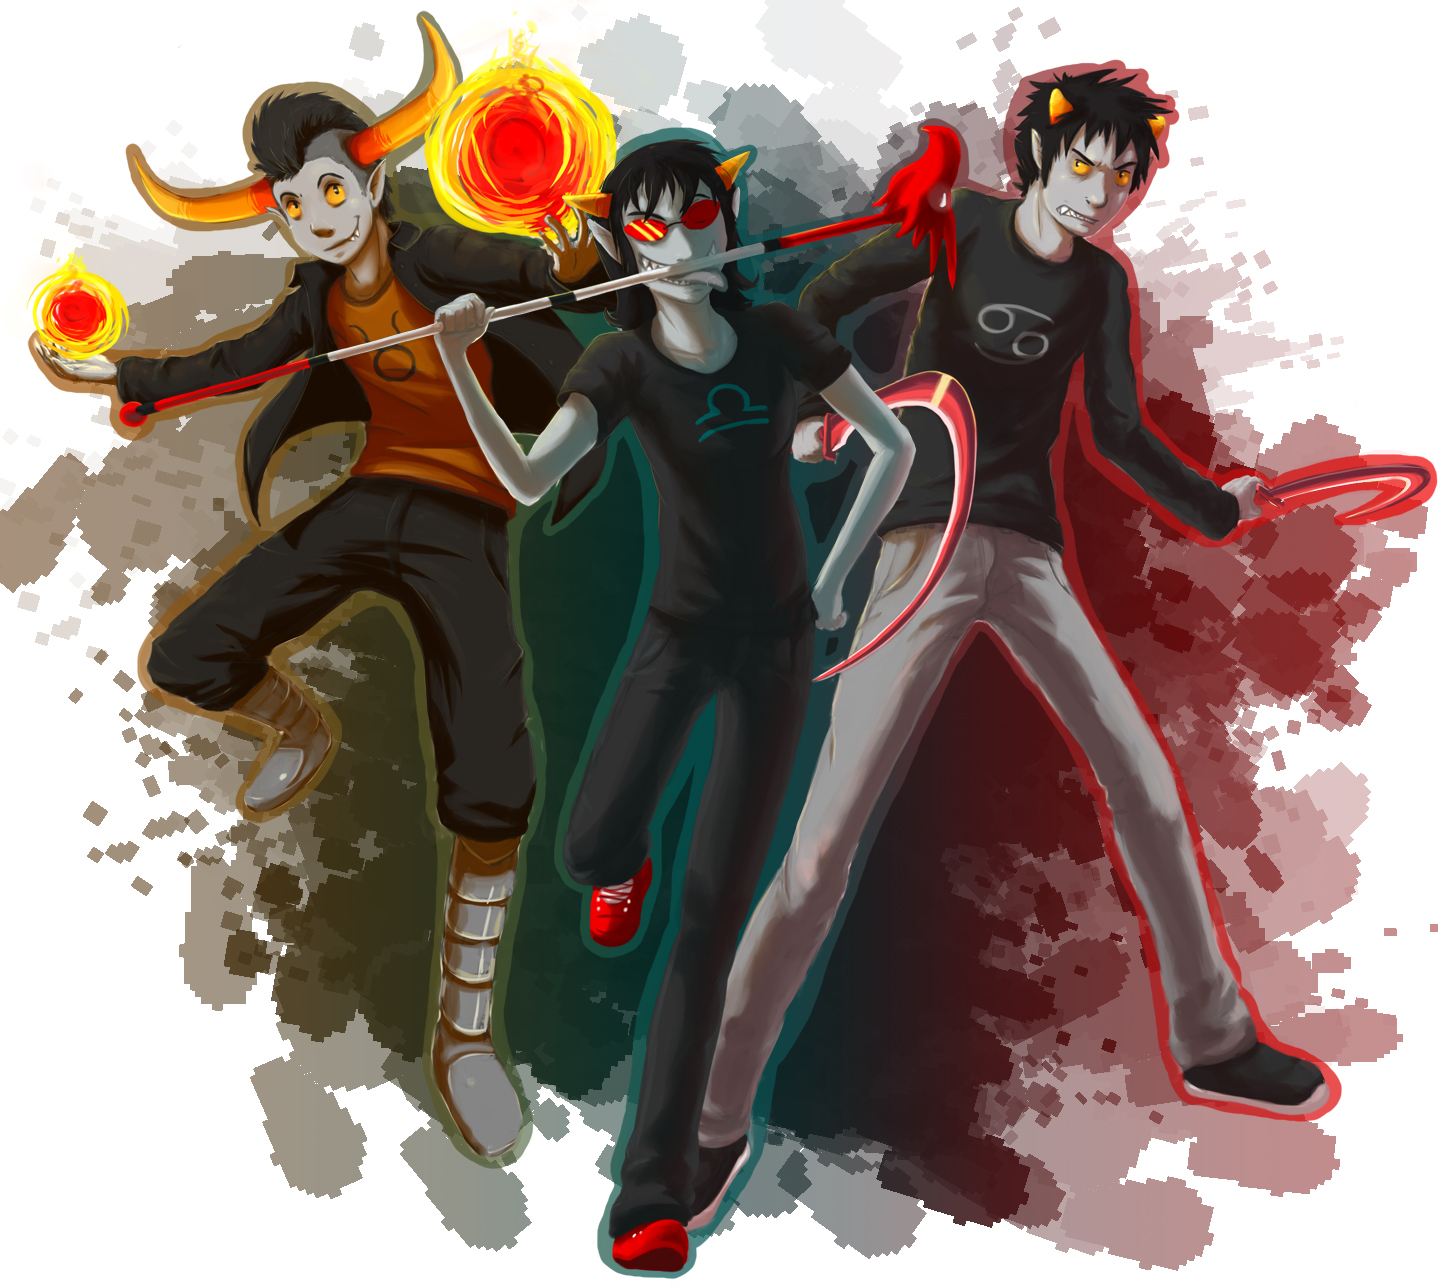 Homestuuuuuck by crow559